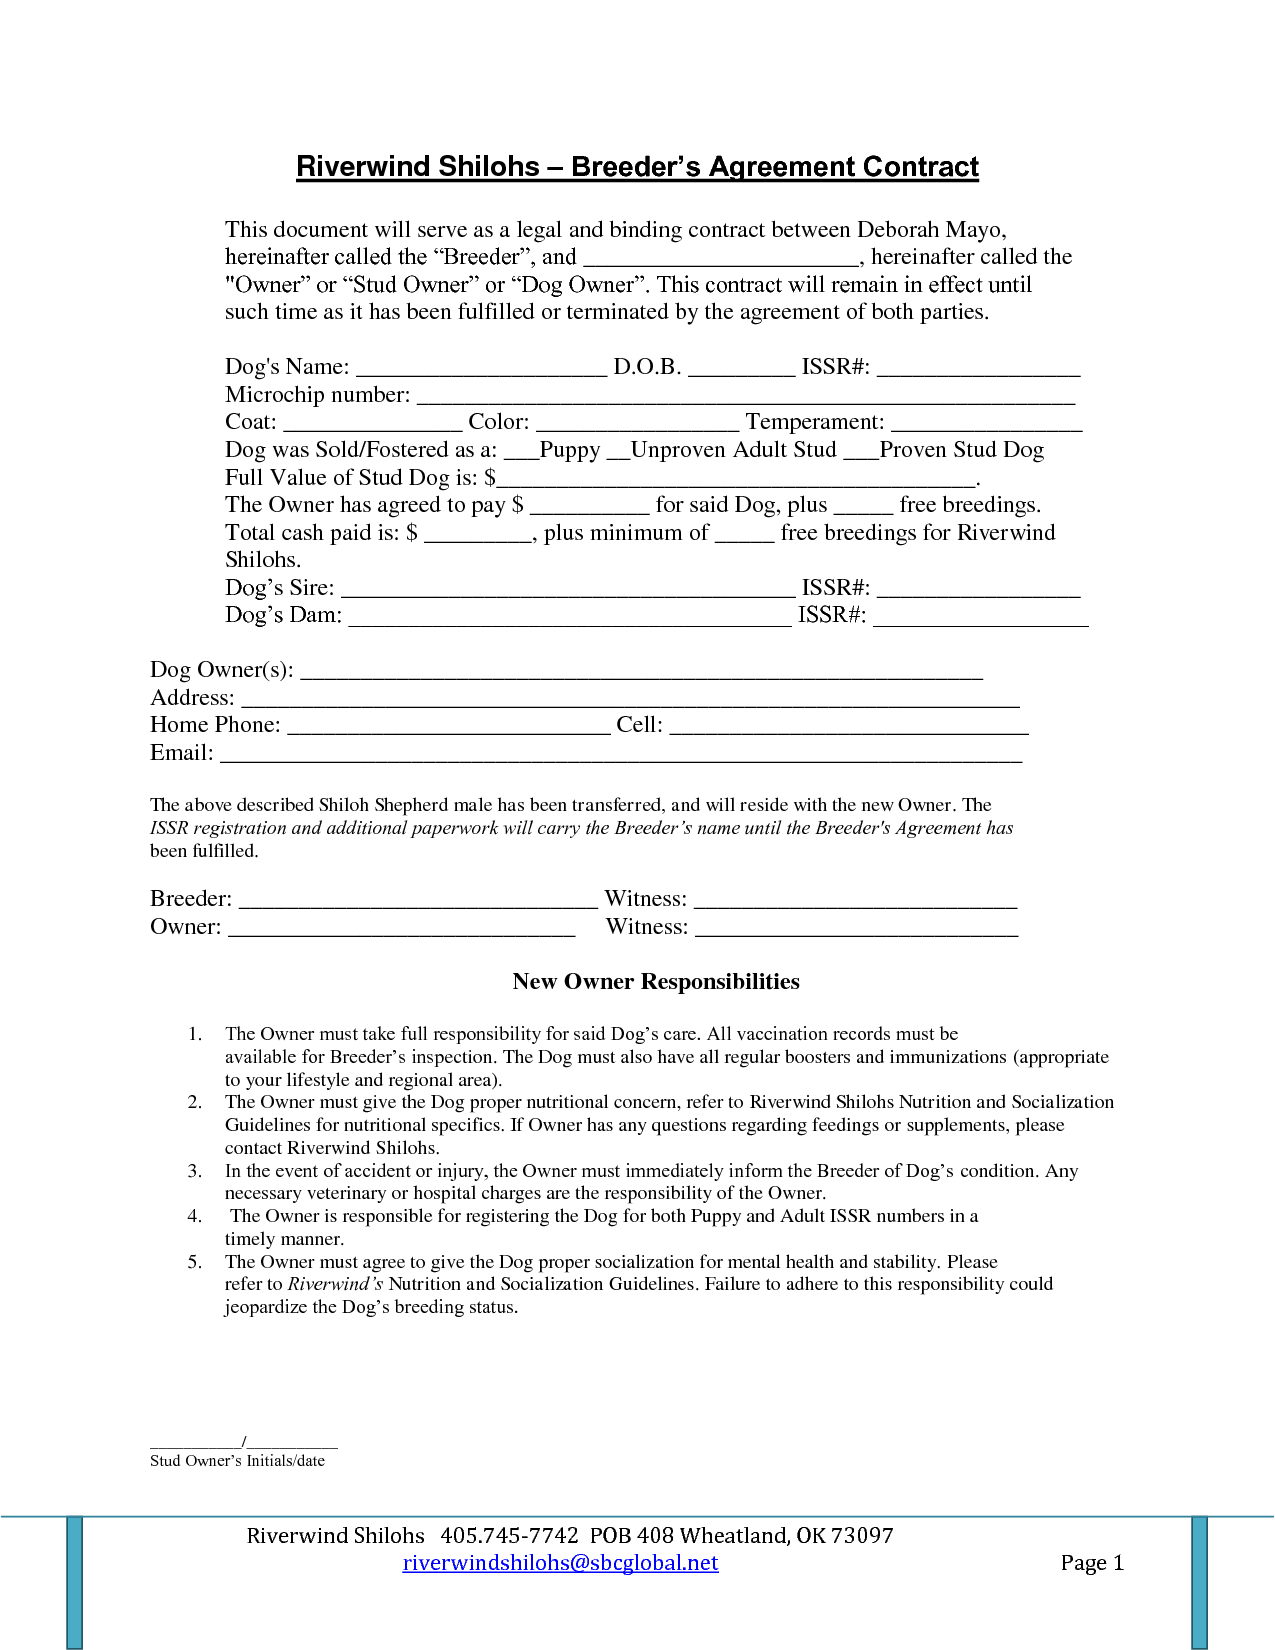 Binding Agreement Contract Template  Invitation Templates  Legal